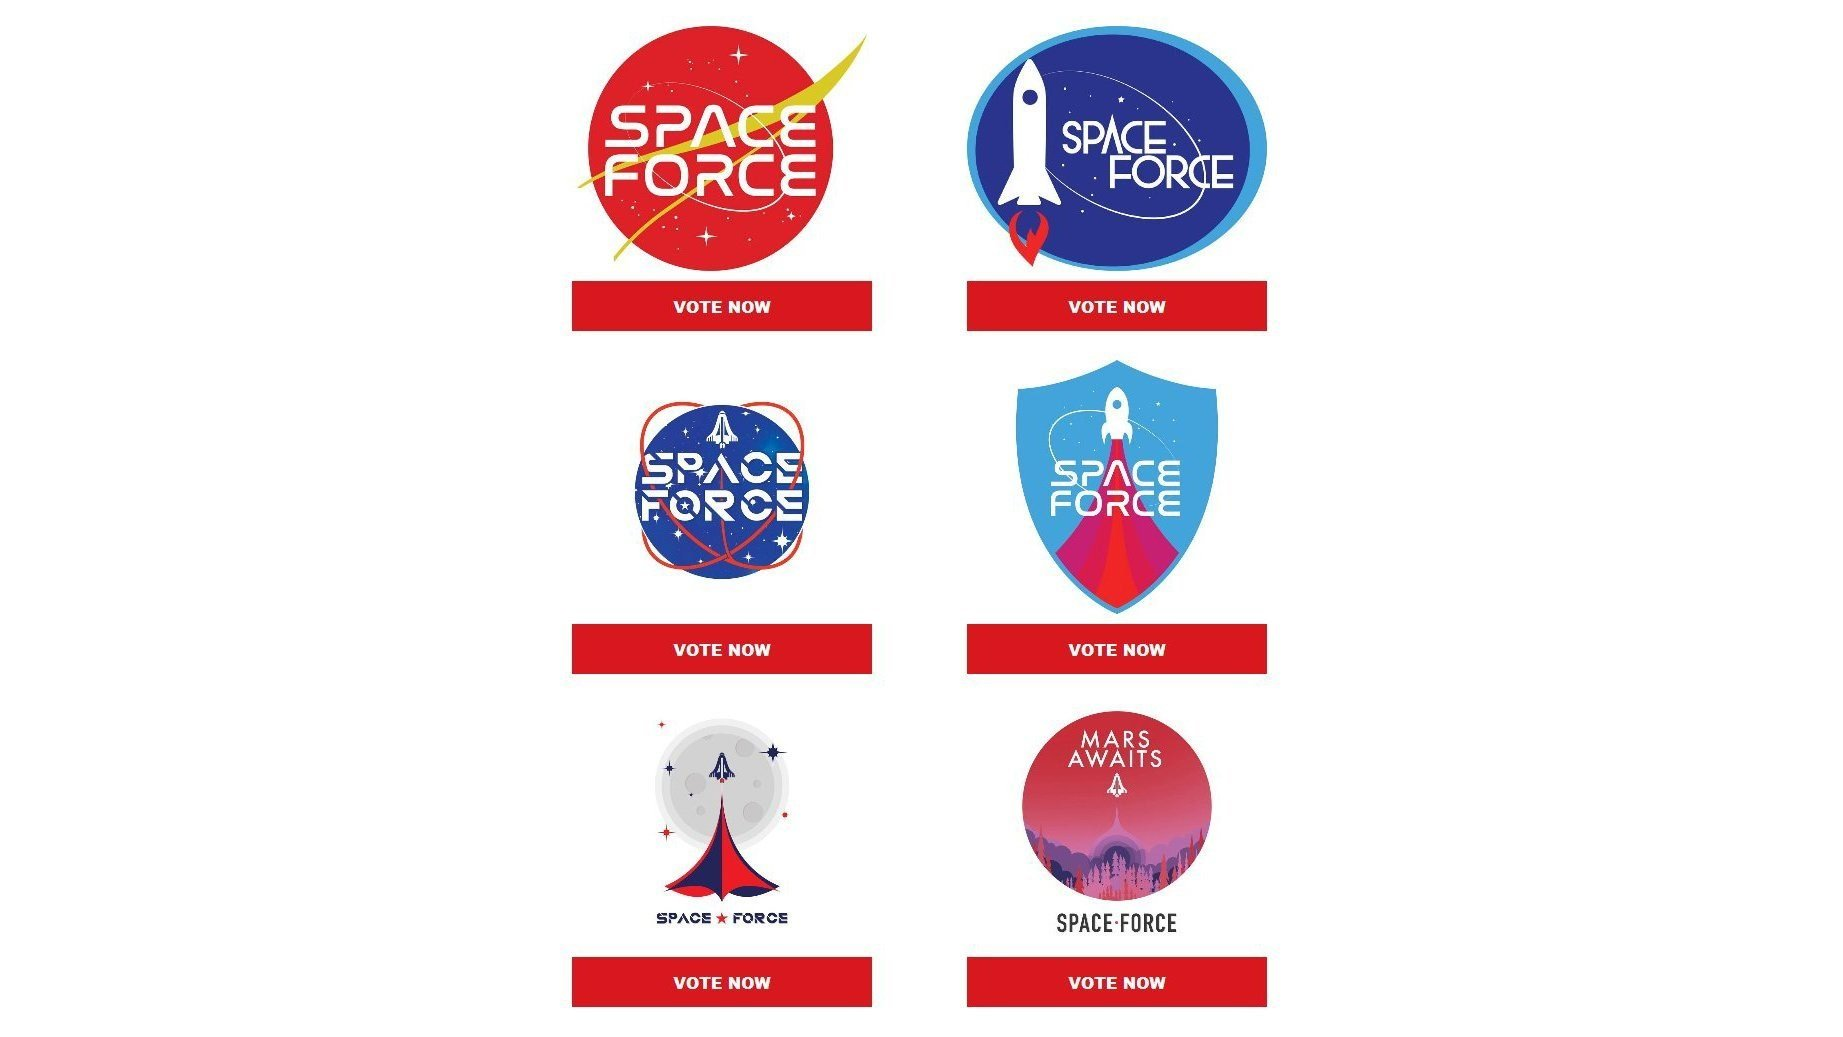 Trump 2020 to sell 'Space Force' merch